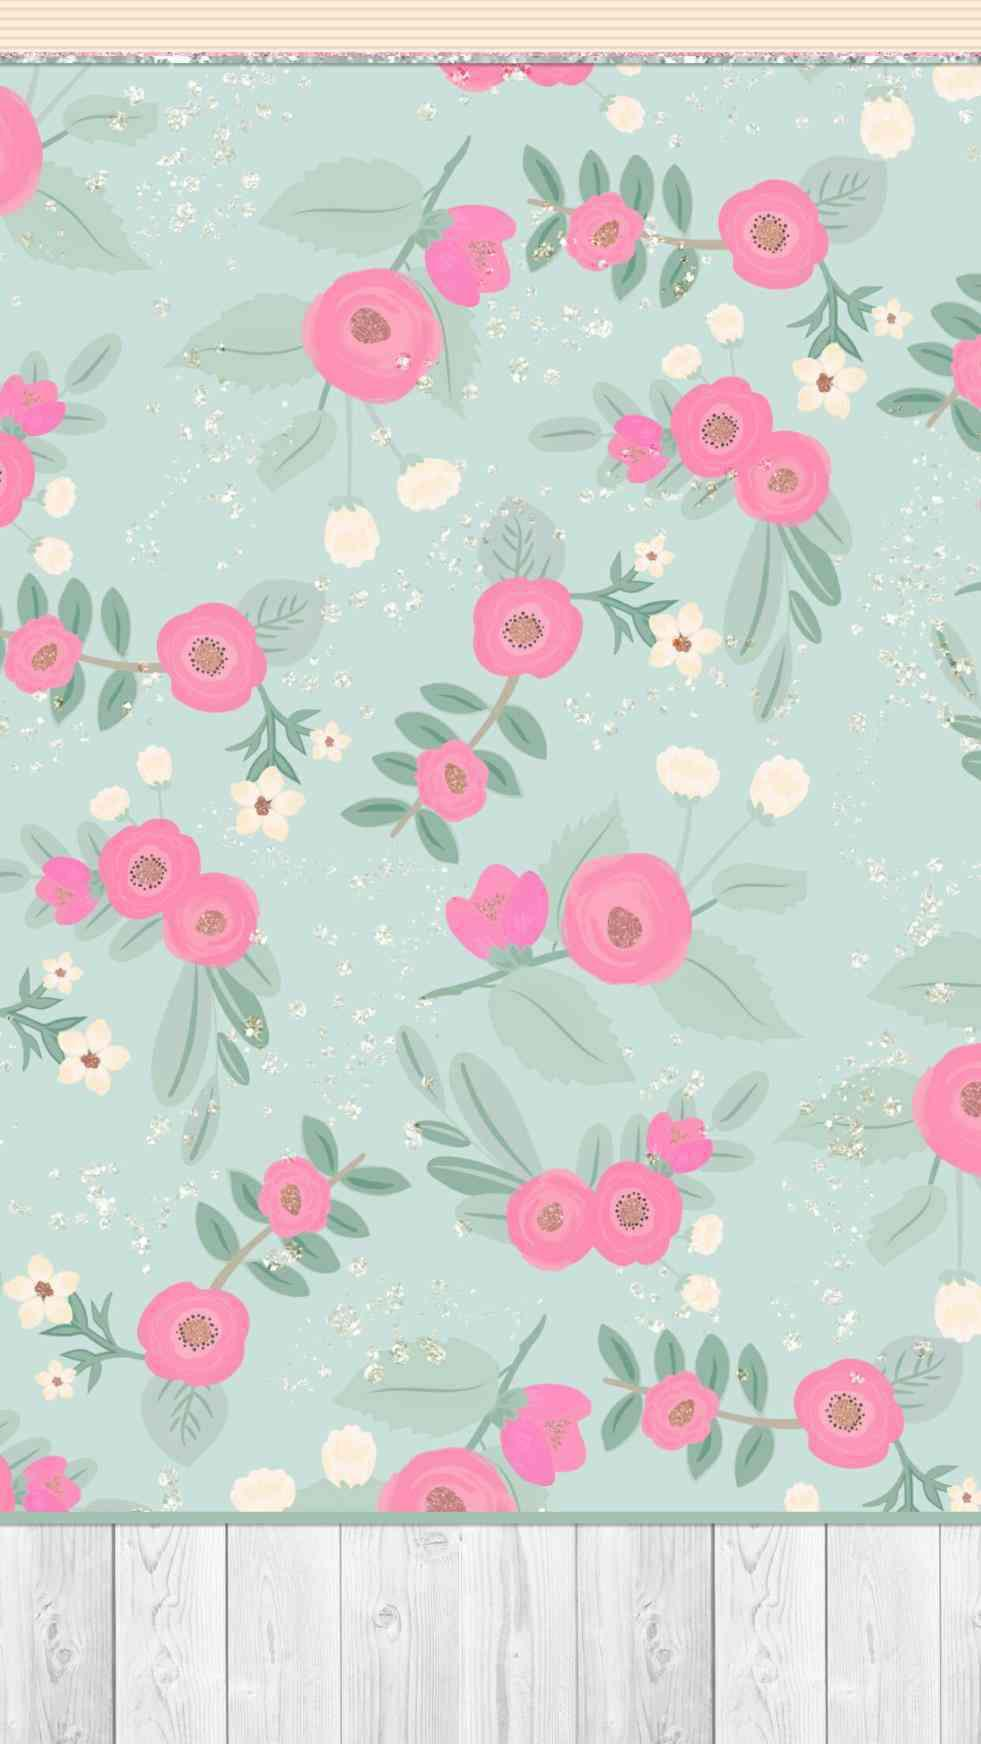 Best Simply Shabby Chic Wallpaper on HipWallpaper